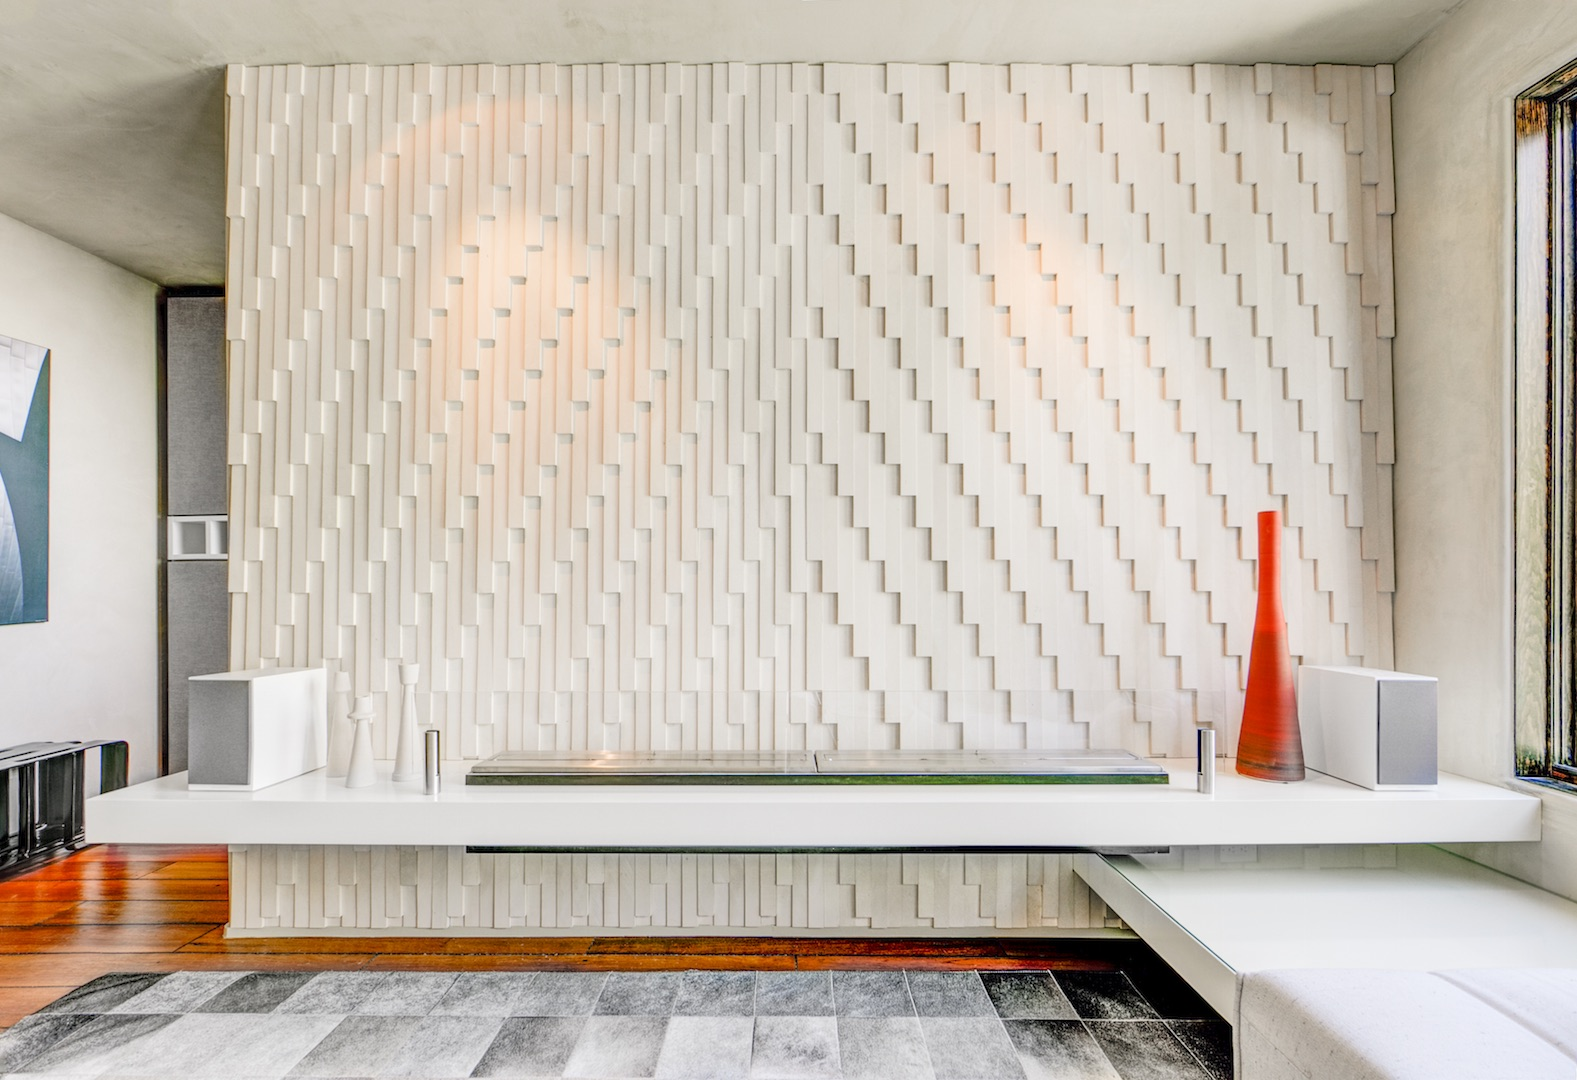 Tile wall pattern over fireplace seating area